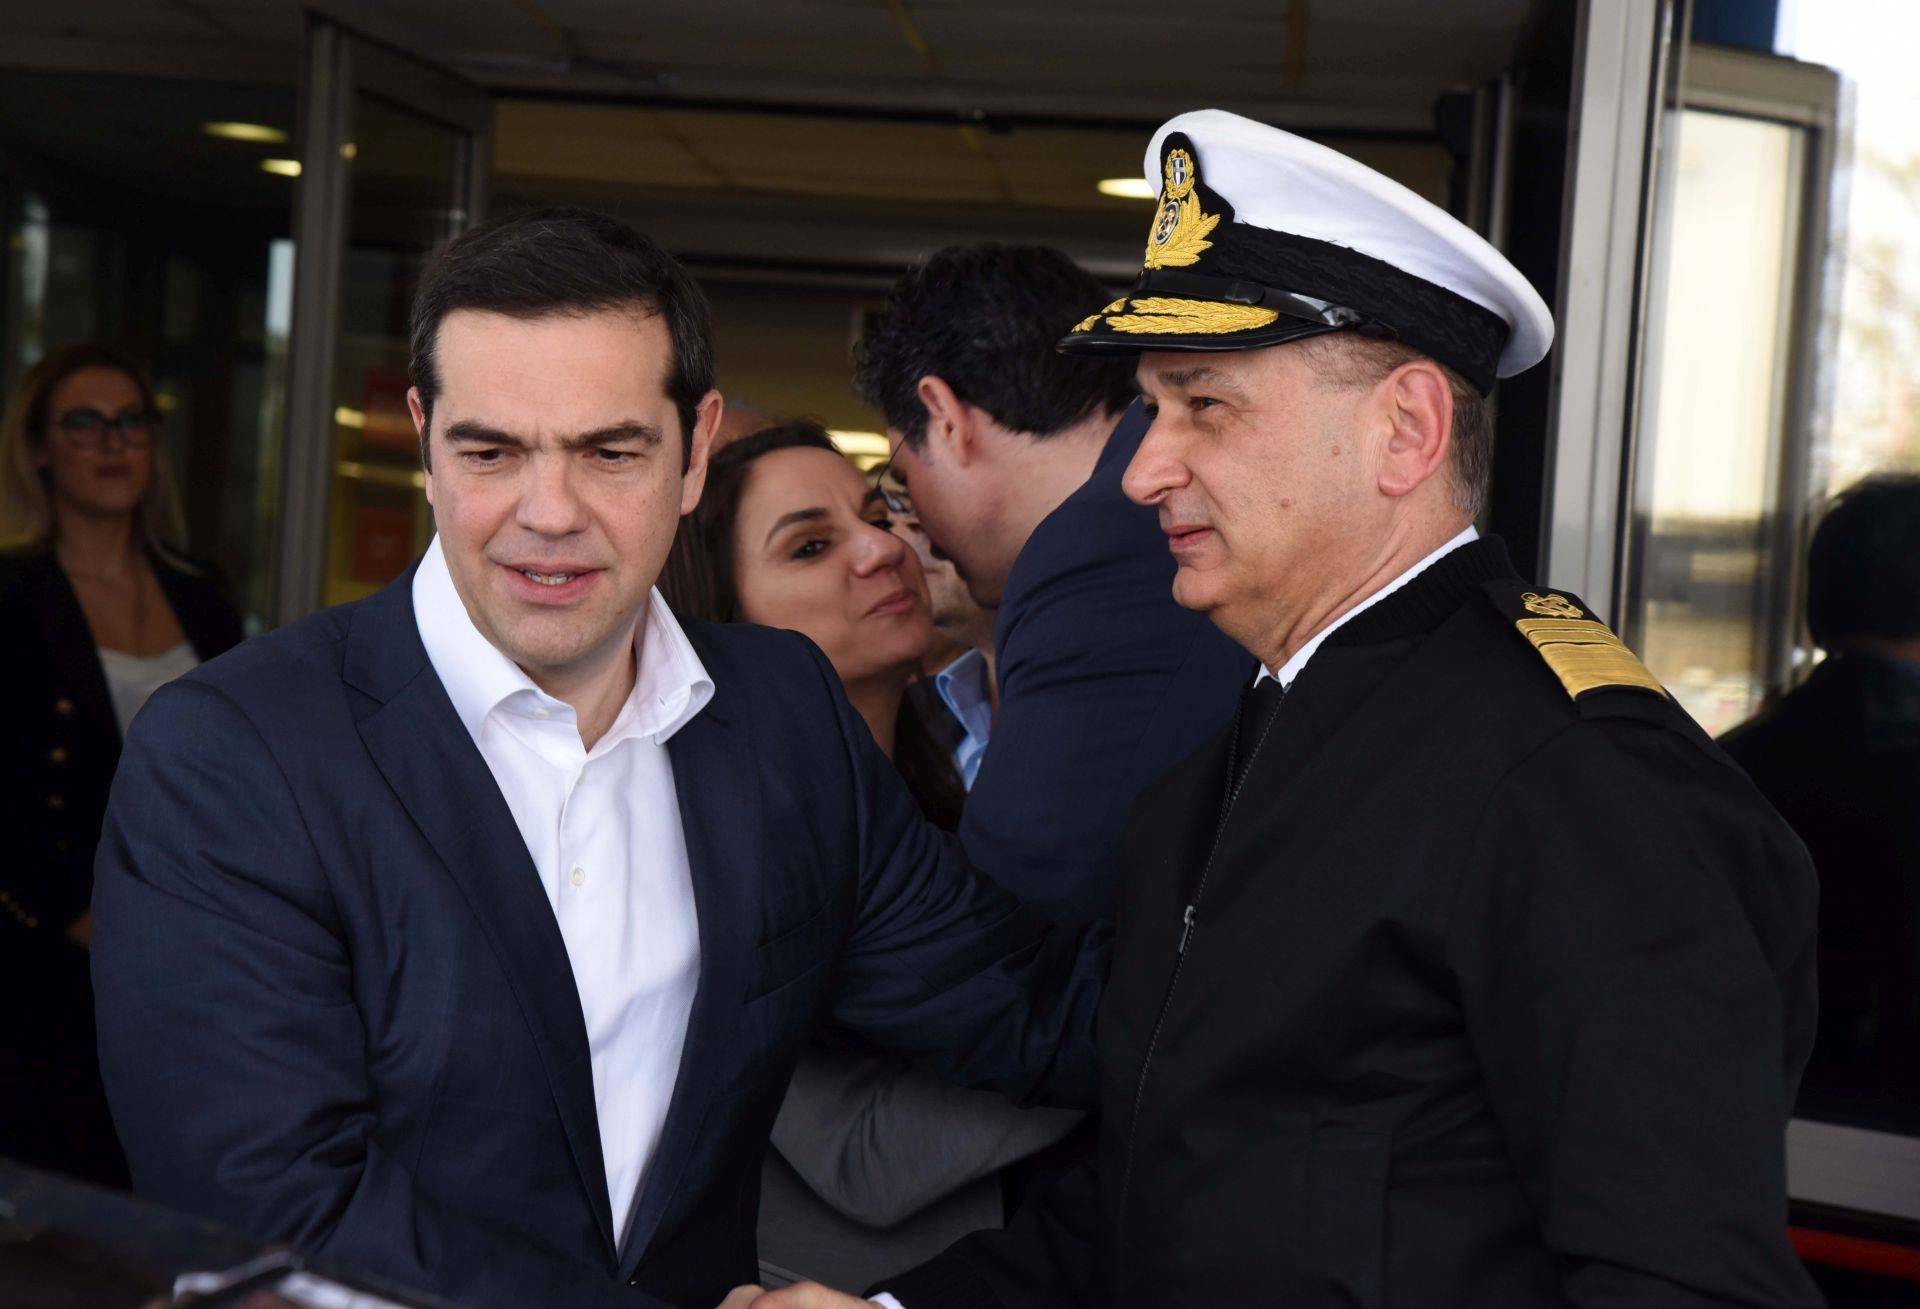 Turkey Warns Greece Over Aegean Sea Tensions